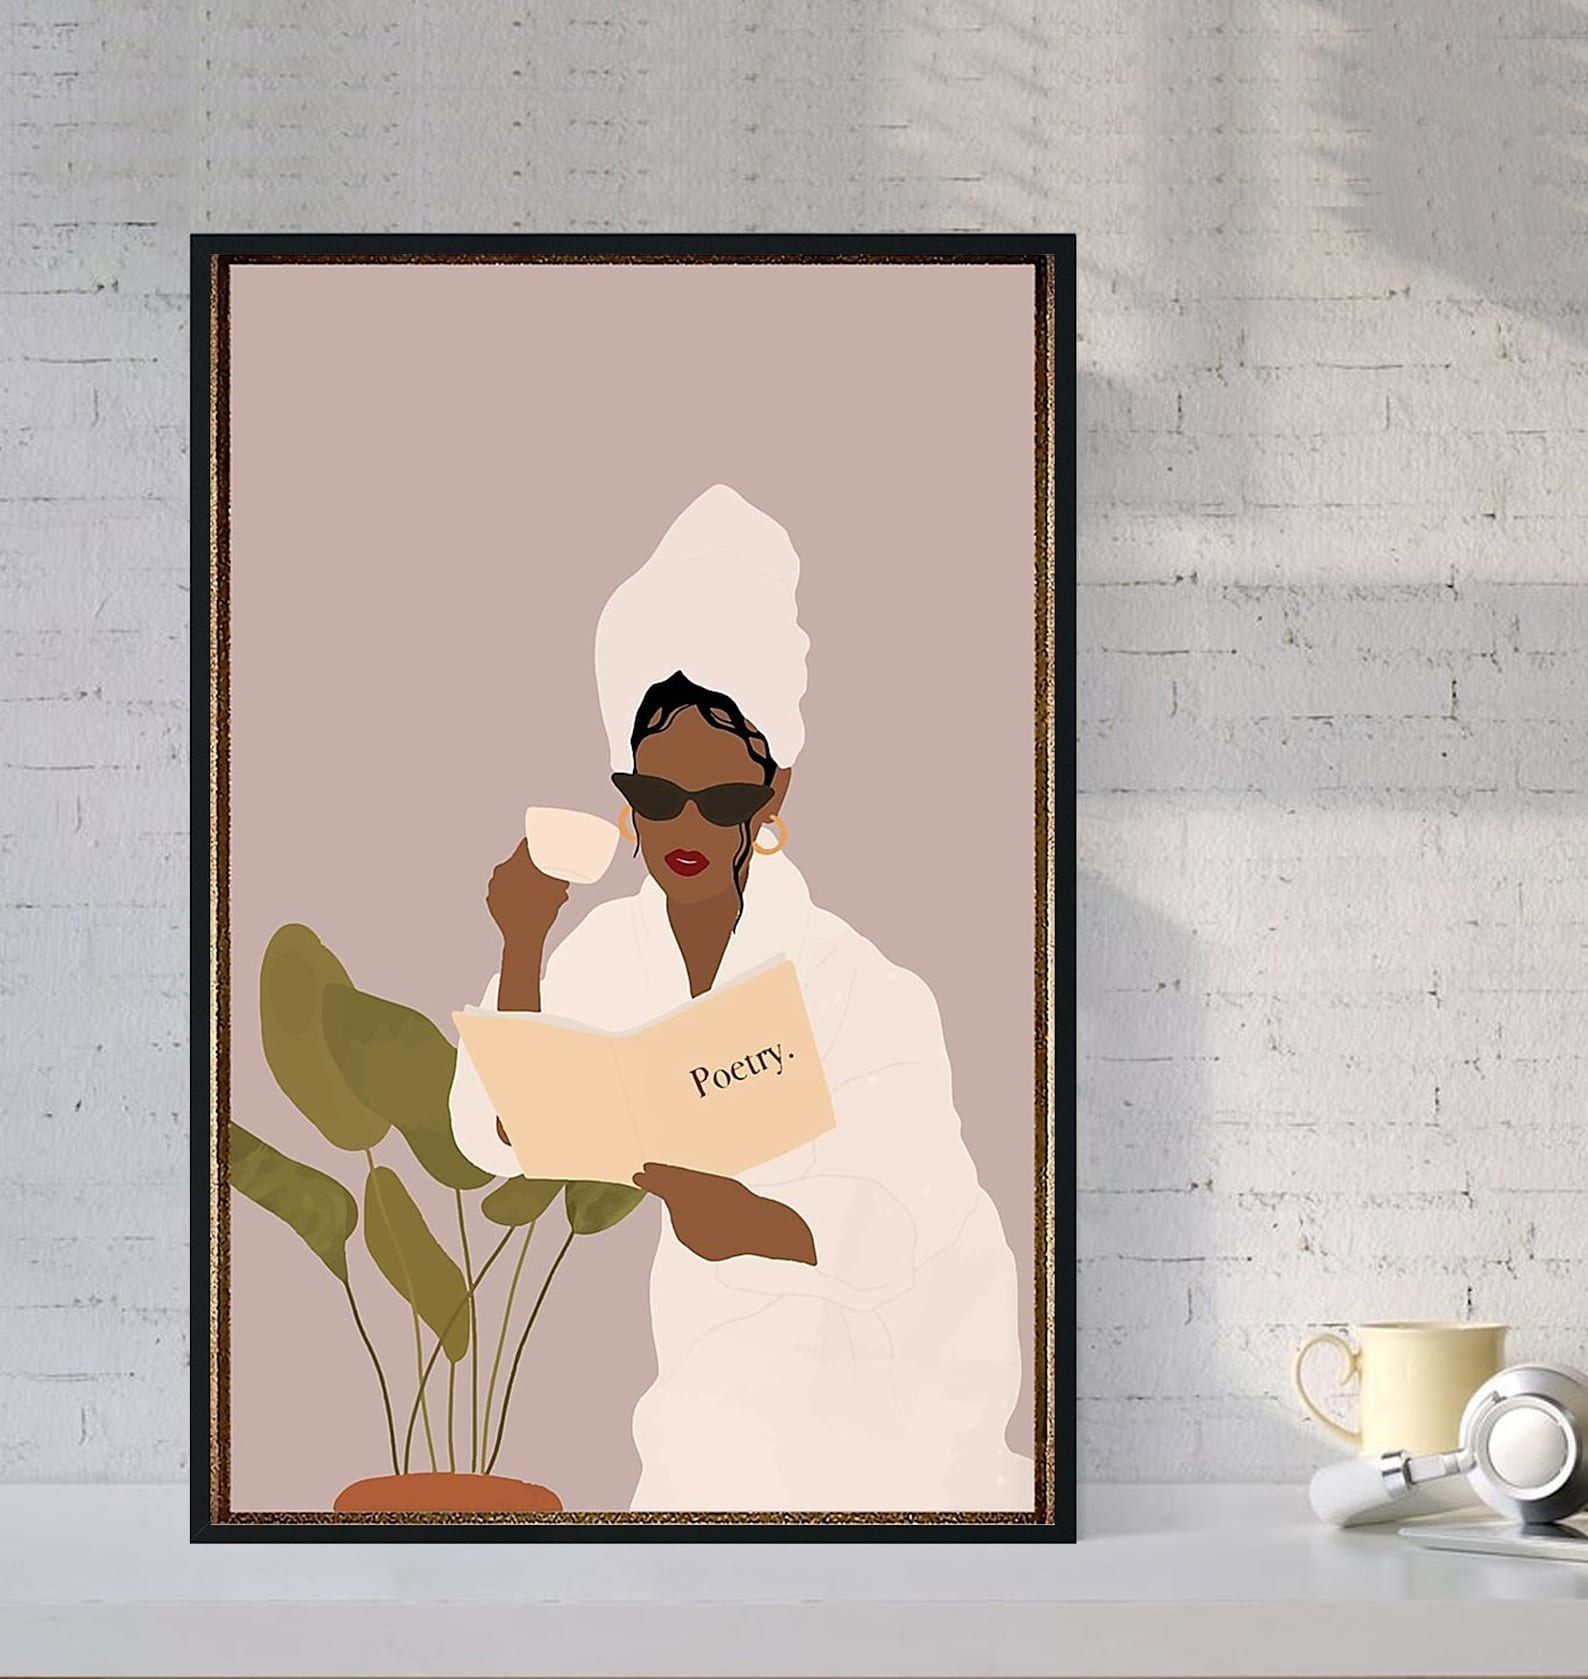 A print of a woman in red lipstick, sunglasses, a robe, and a hair towel drinking coffee and reading a book of poetry while sitting near a plant